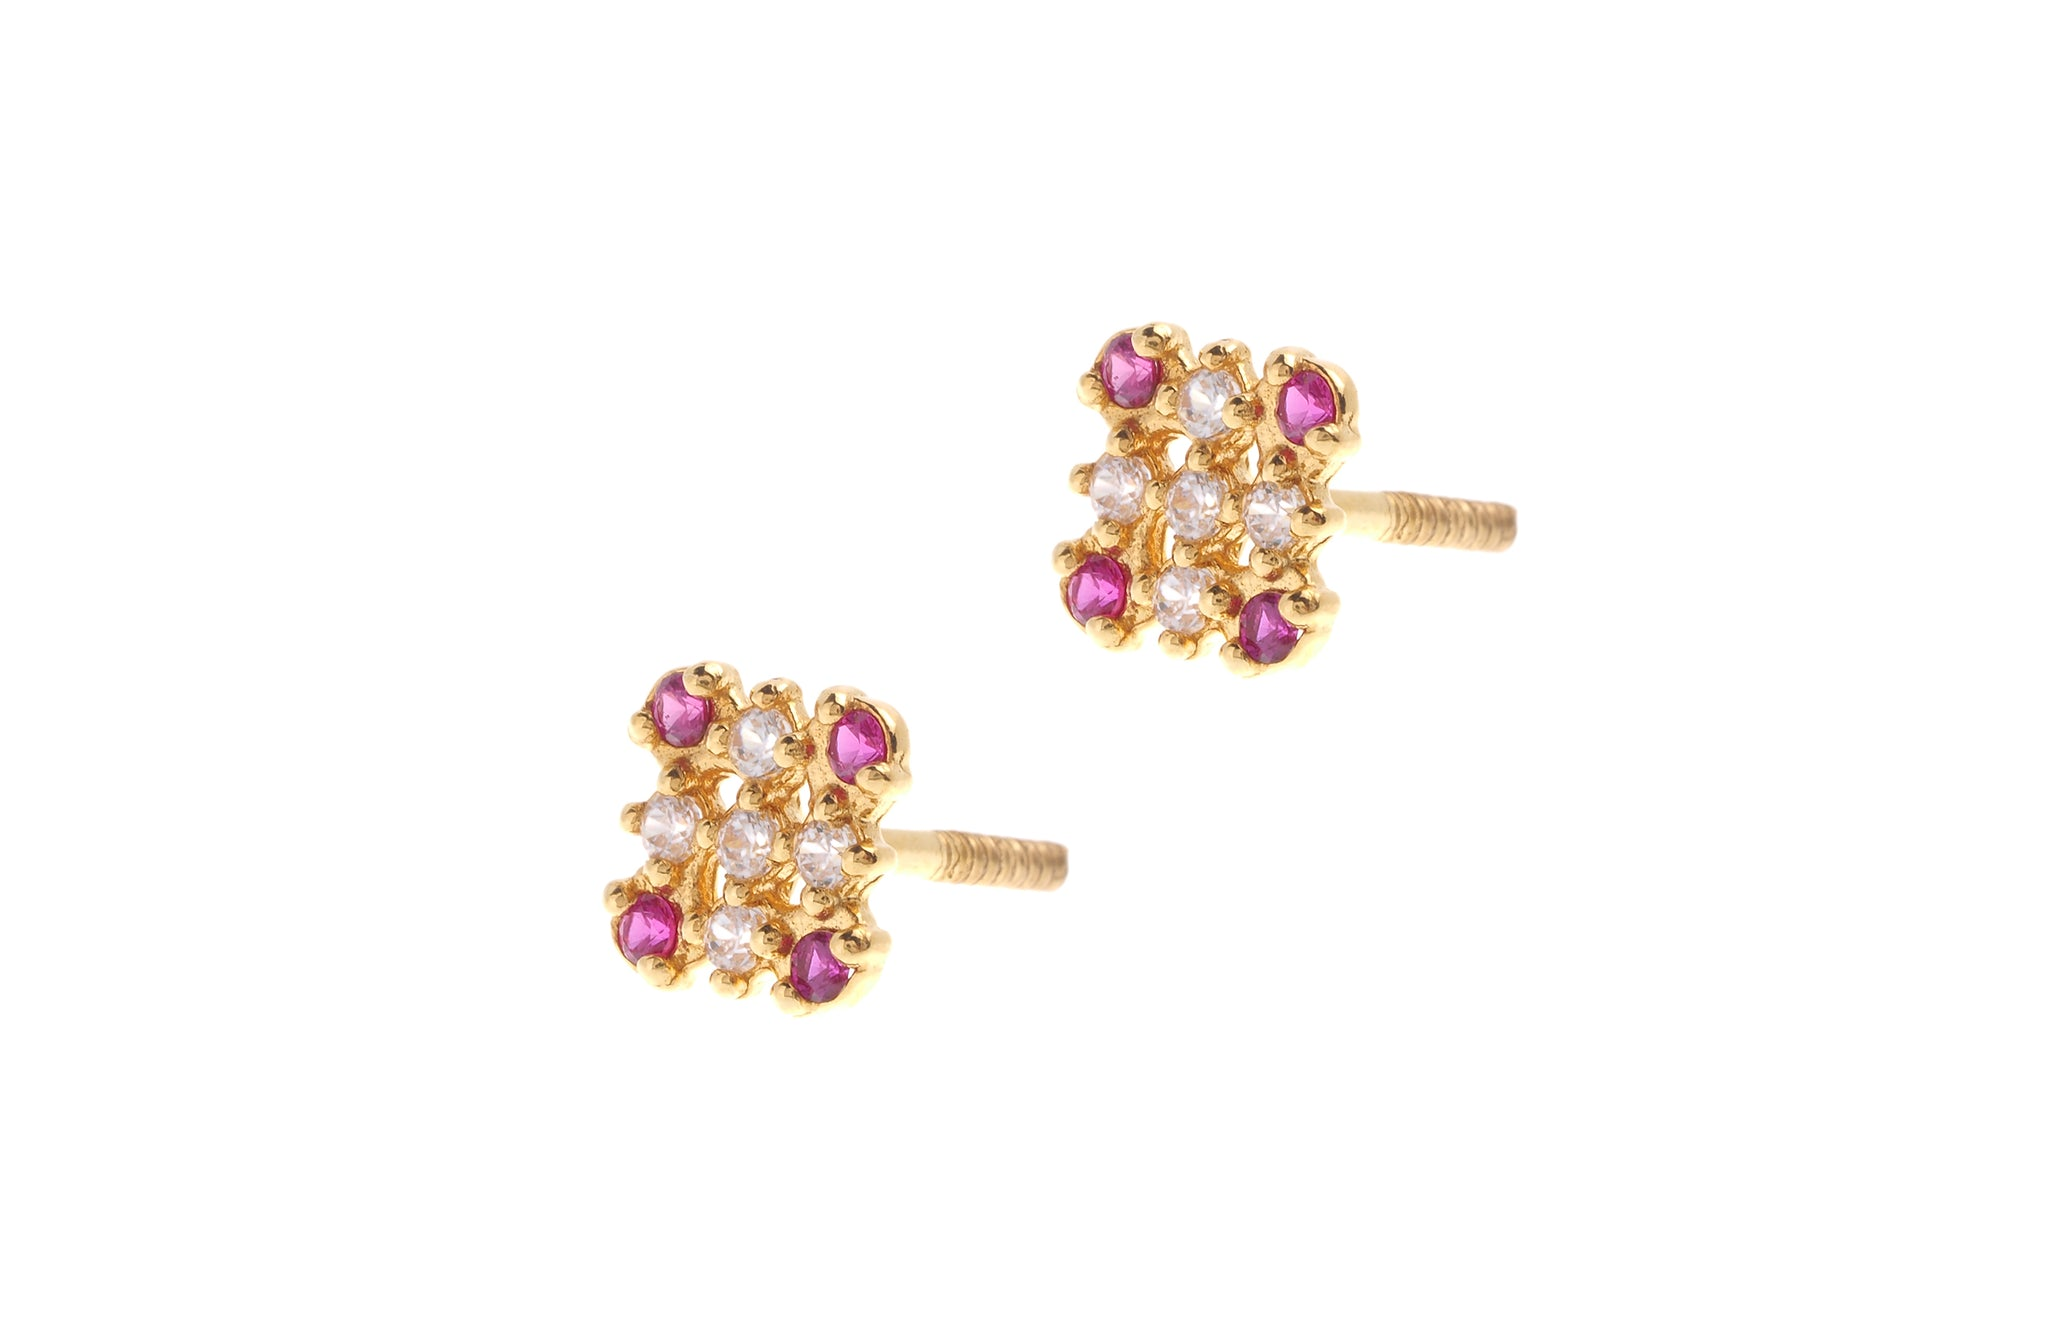 22ct Gold Stud Earrings Cubic Zirconia (White & Red) with Screw Backs (1.7g) E-6650